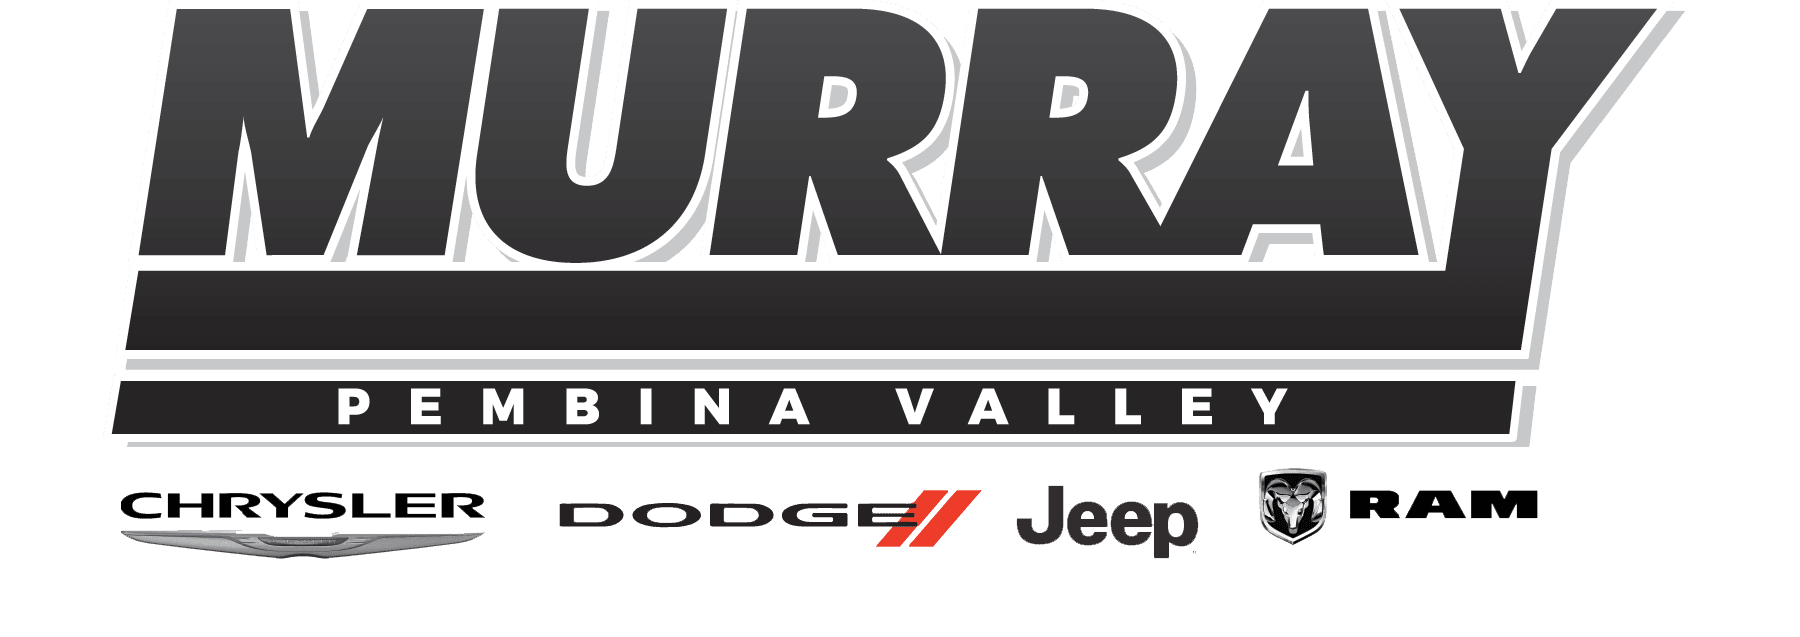 Used New Cars Trucks Suvs Murray Dodge Jeep Ram Morden Murray Morden Dodge Jeep Ram